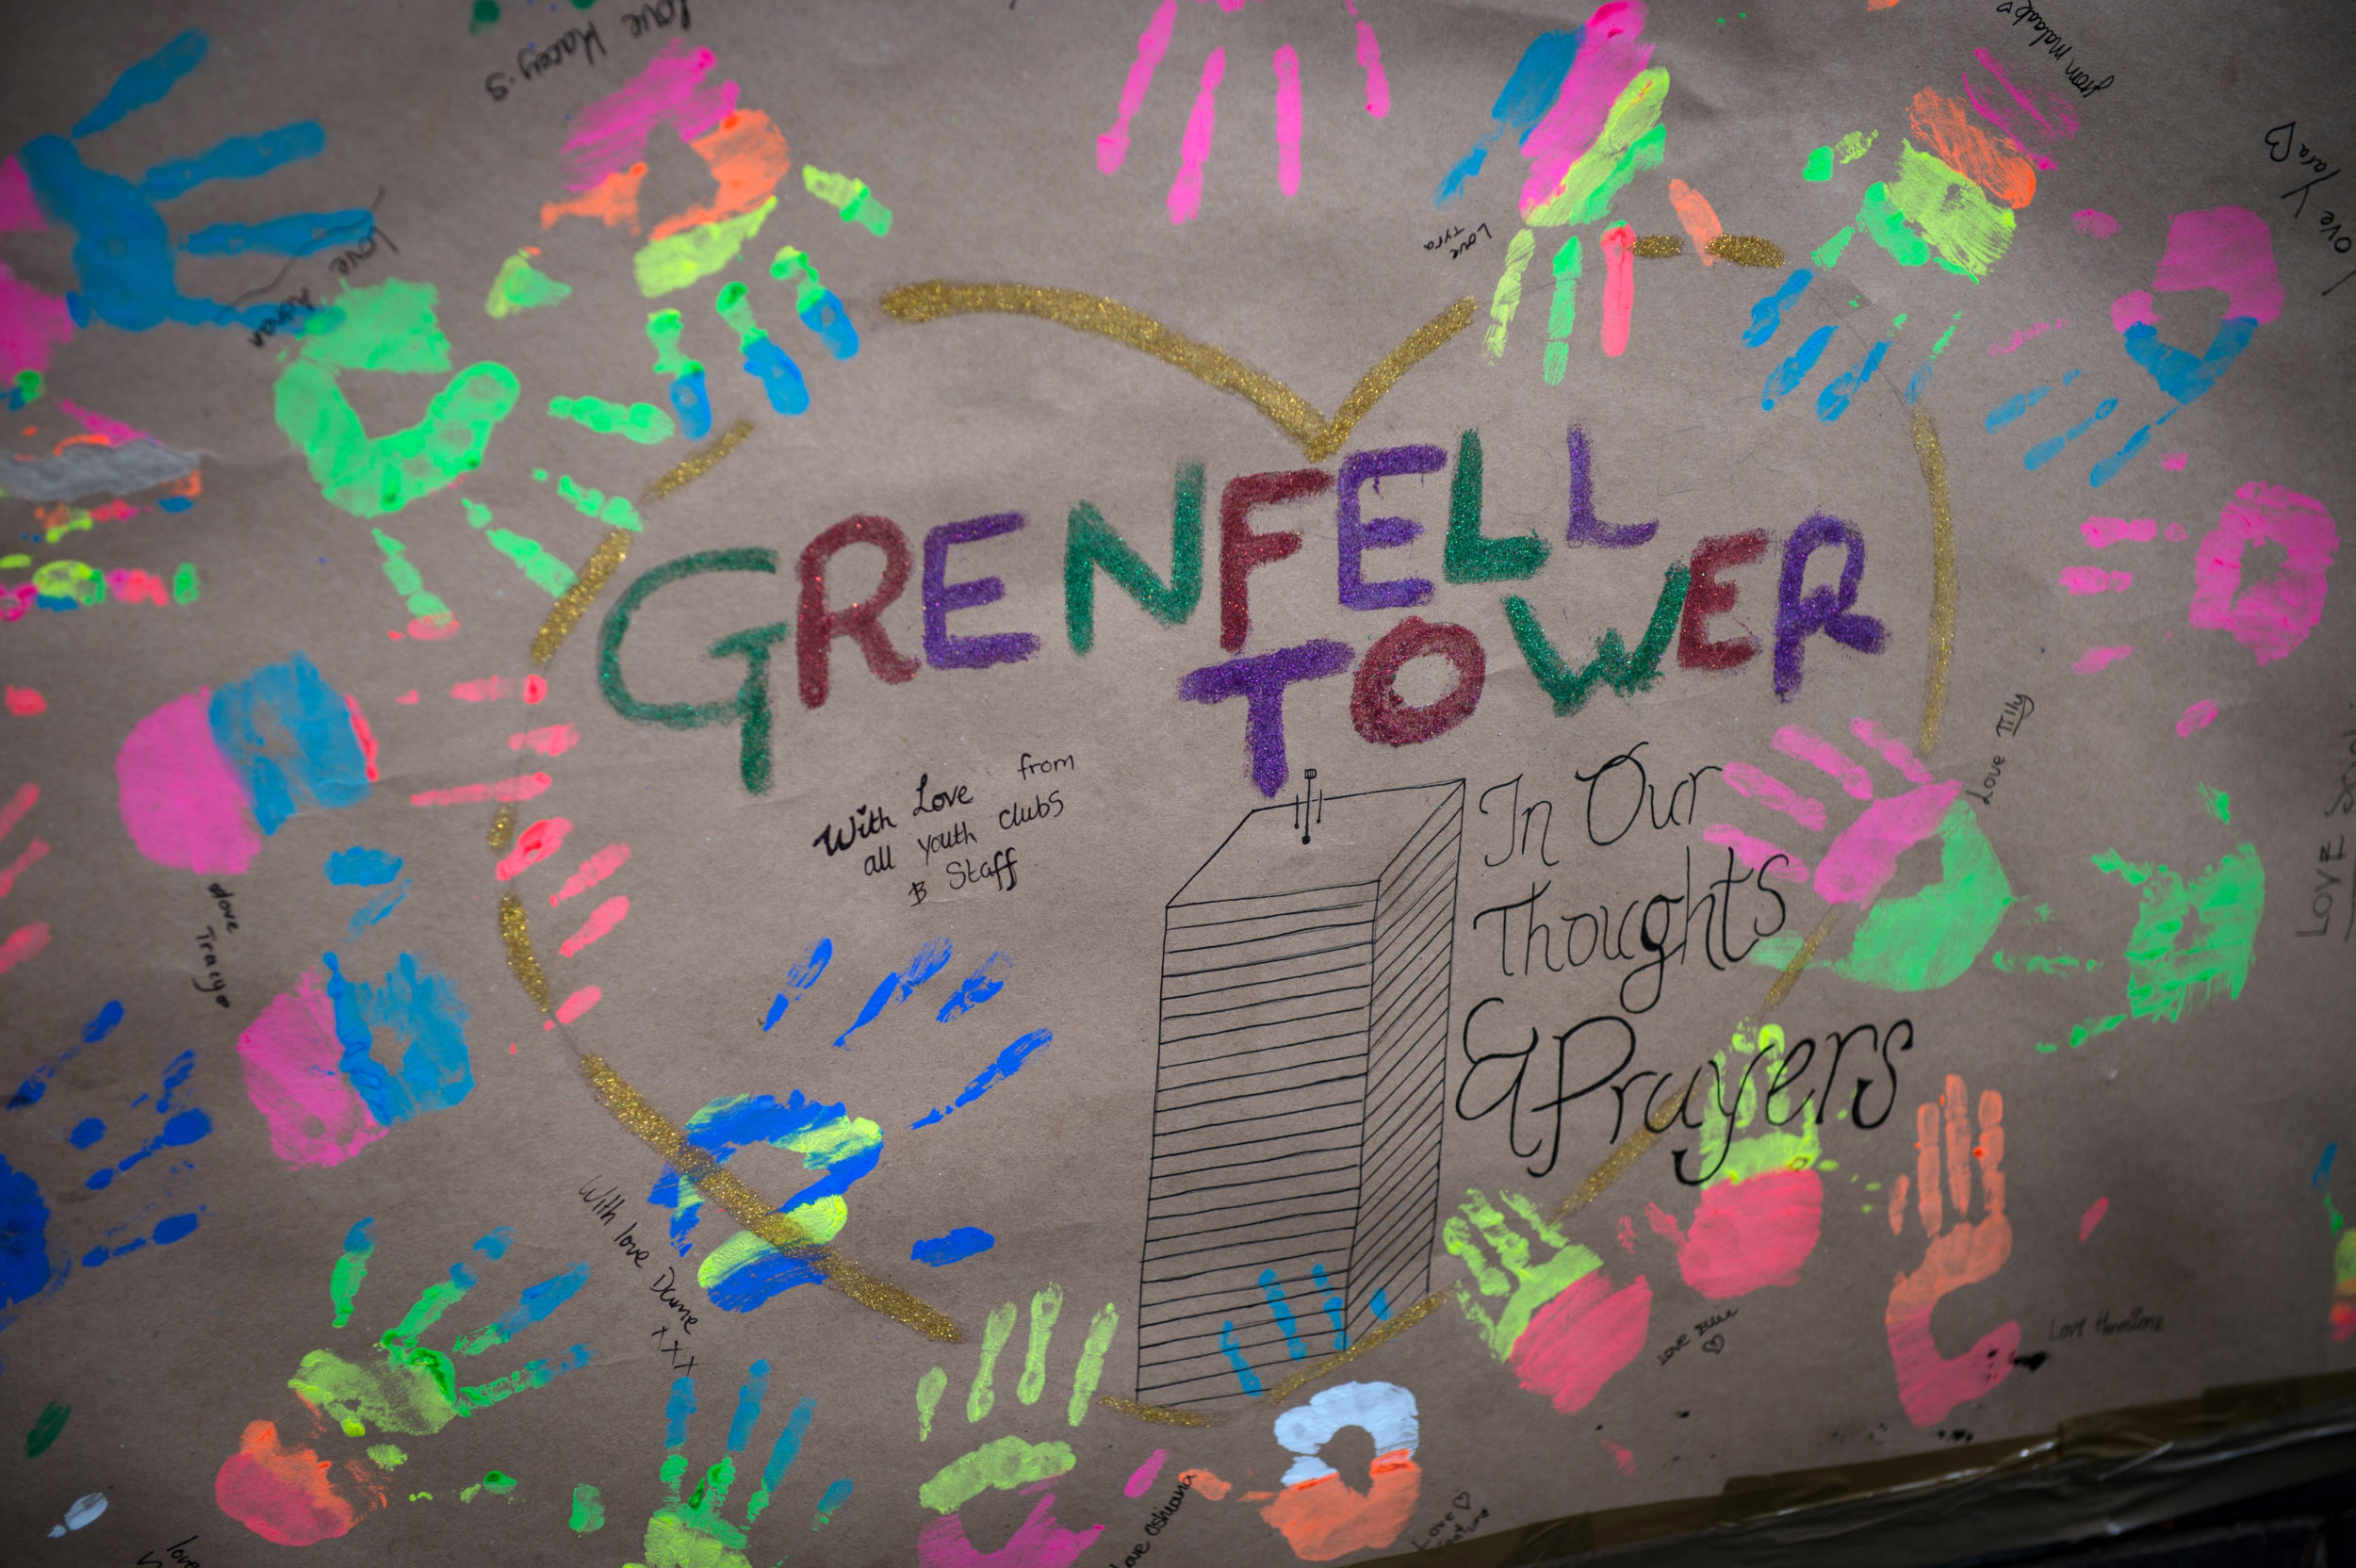 A handmade poster holds colourful handprints surrounding a golden-outlined heart, with Grenfell Tower and a hand drawing of the tower in the centre.